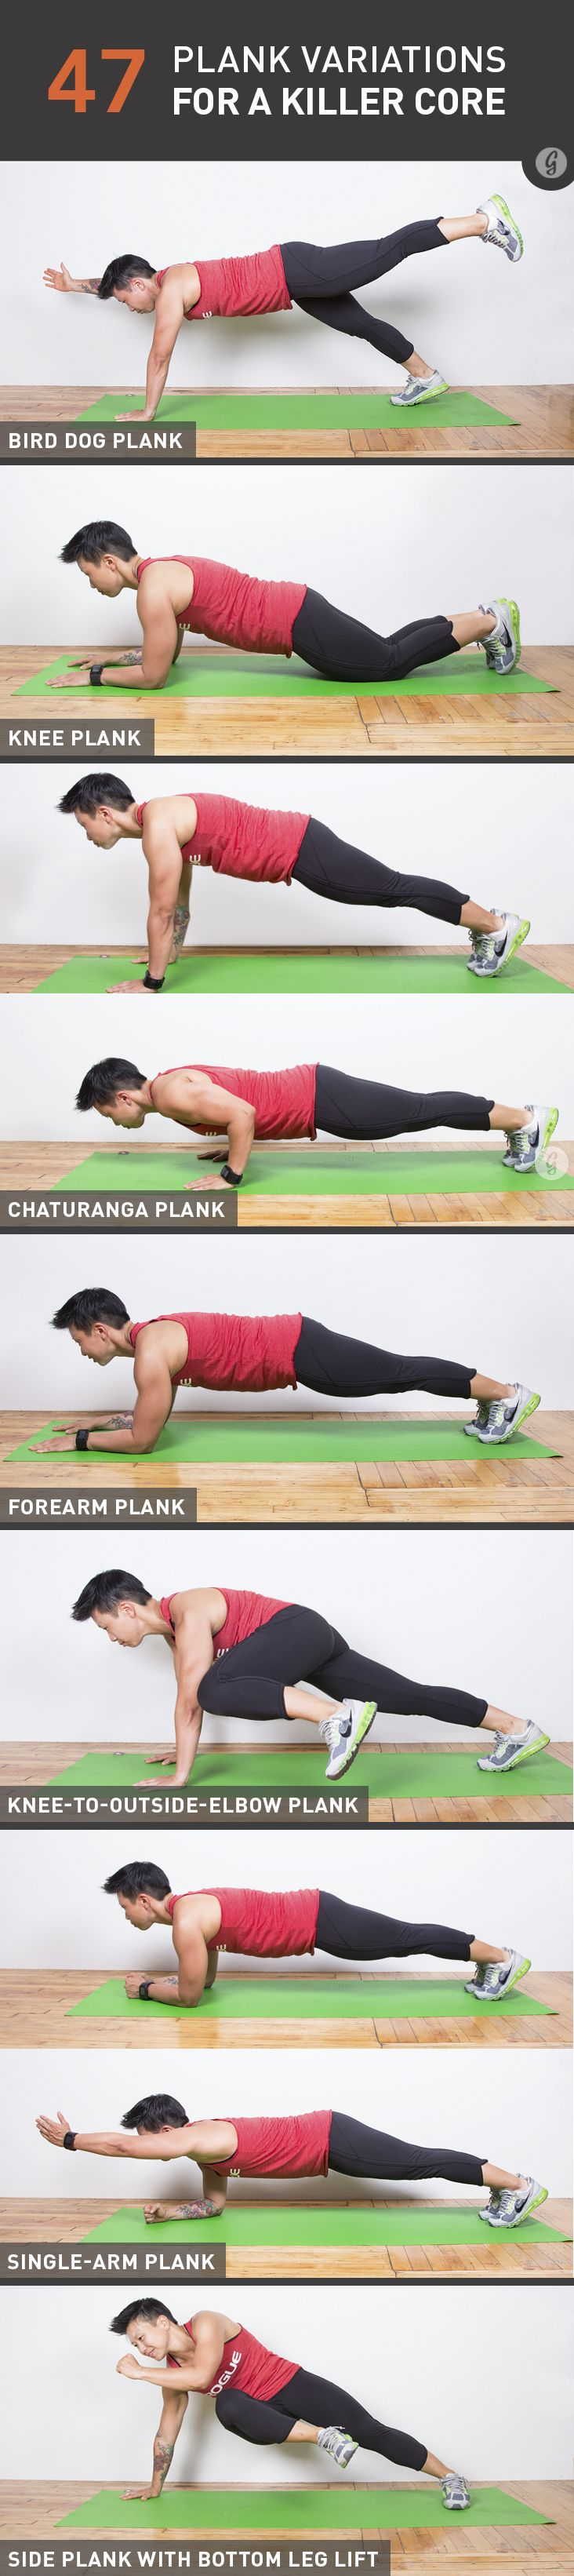 47 plank variations for a killer core